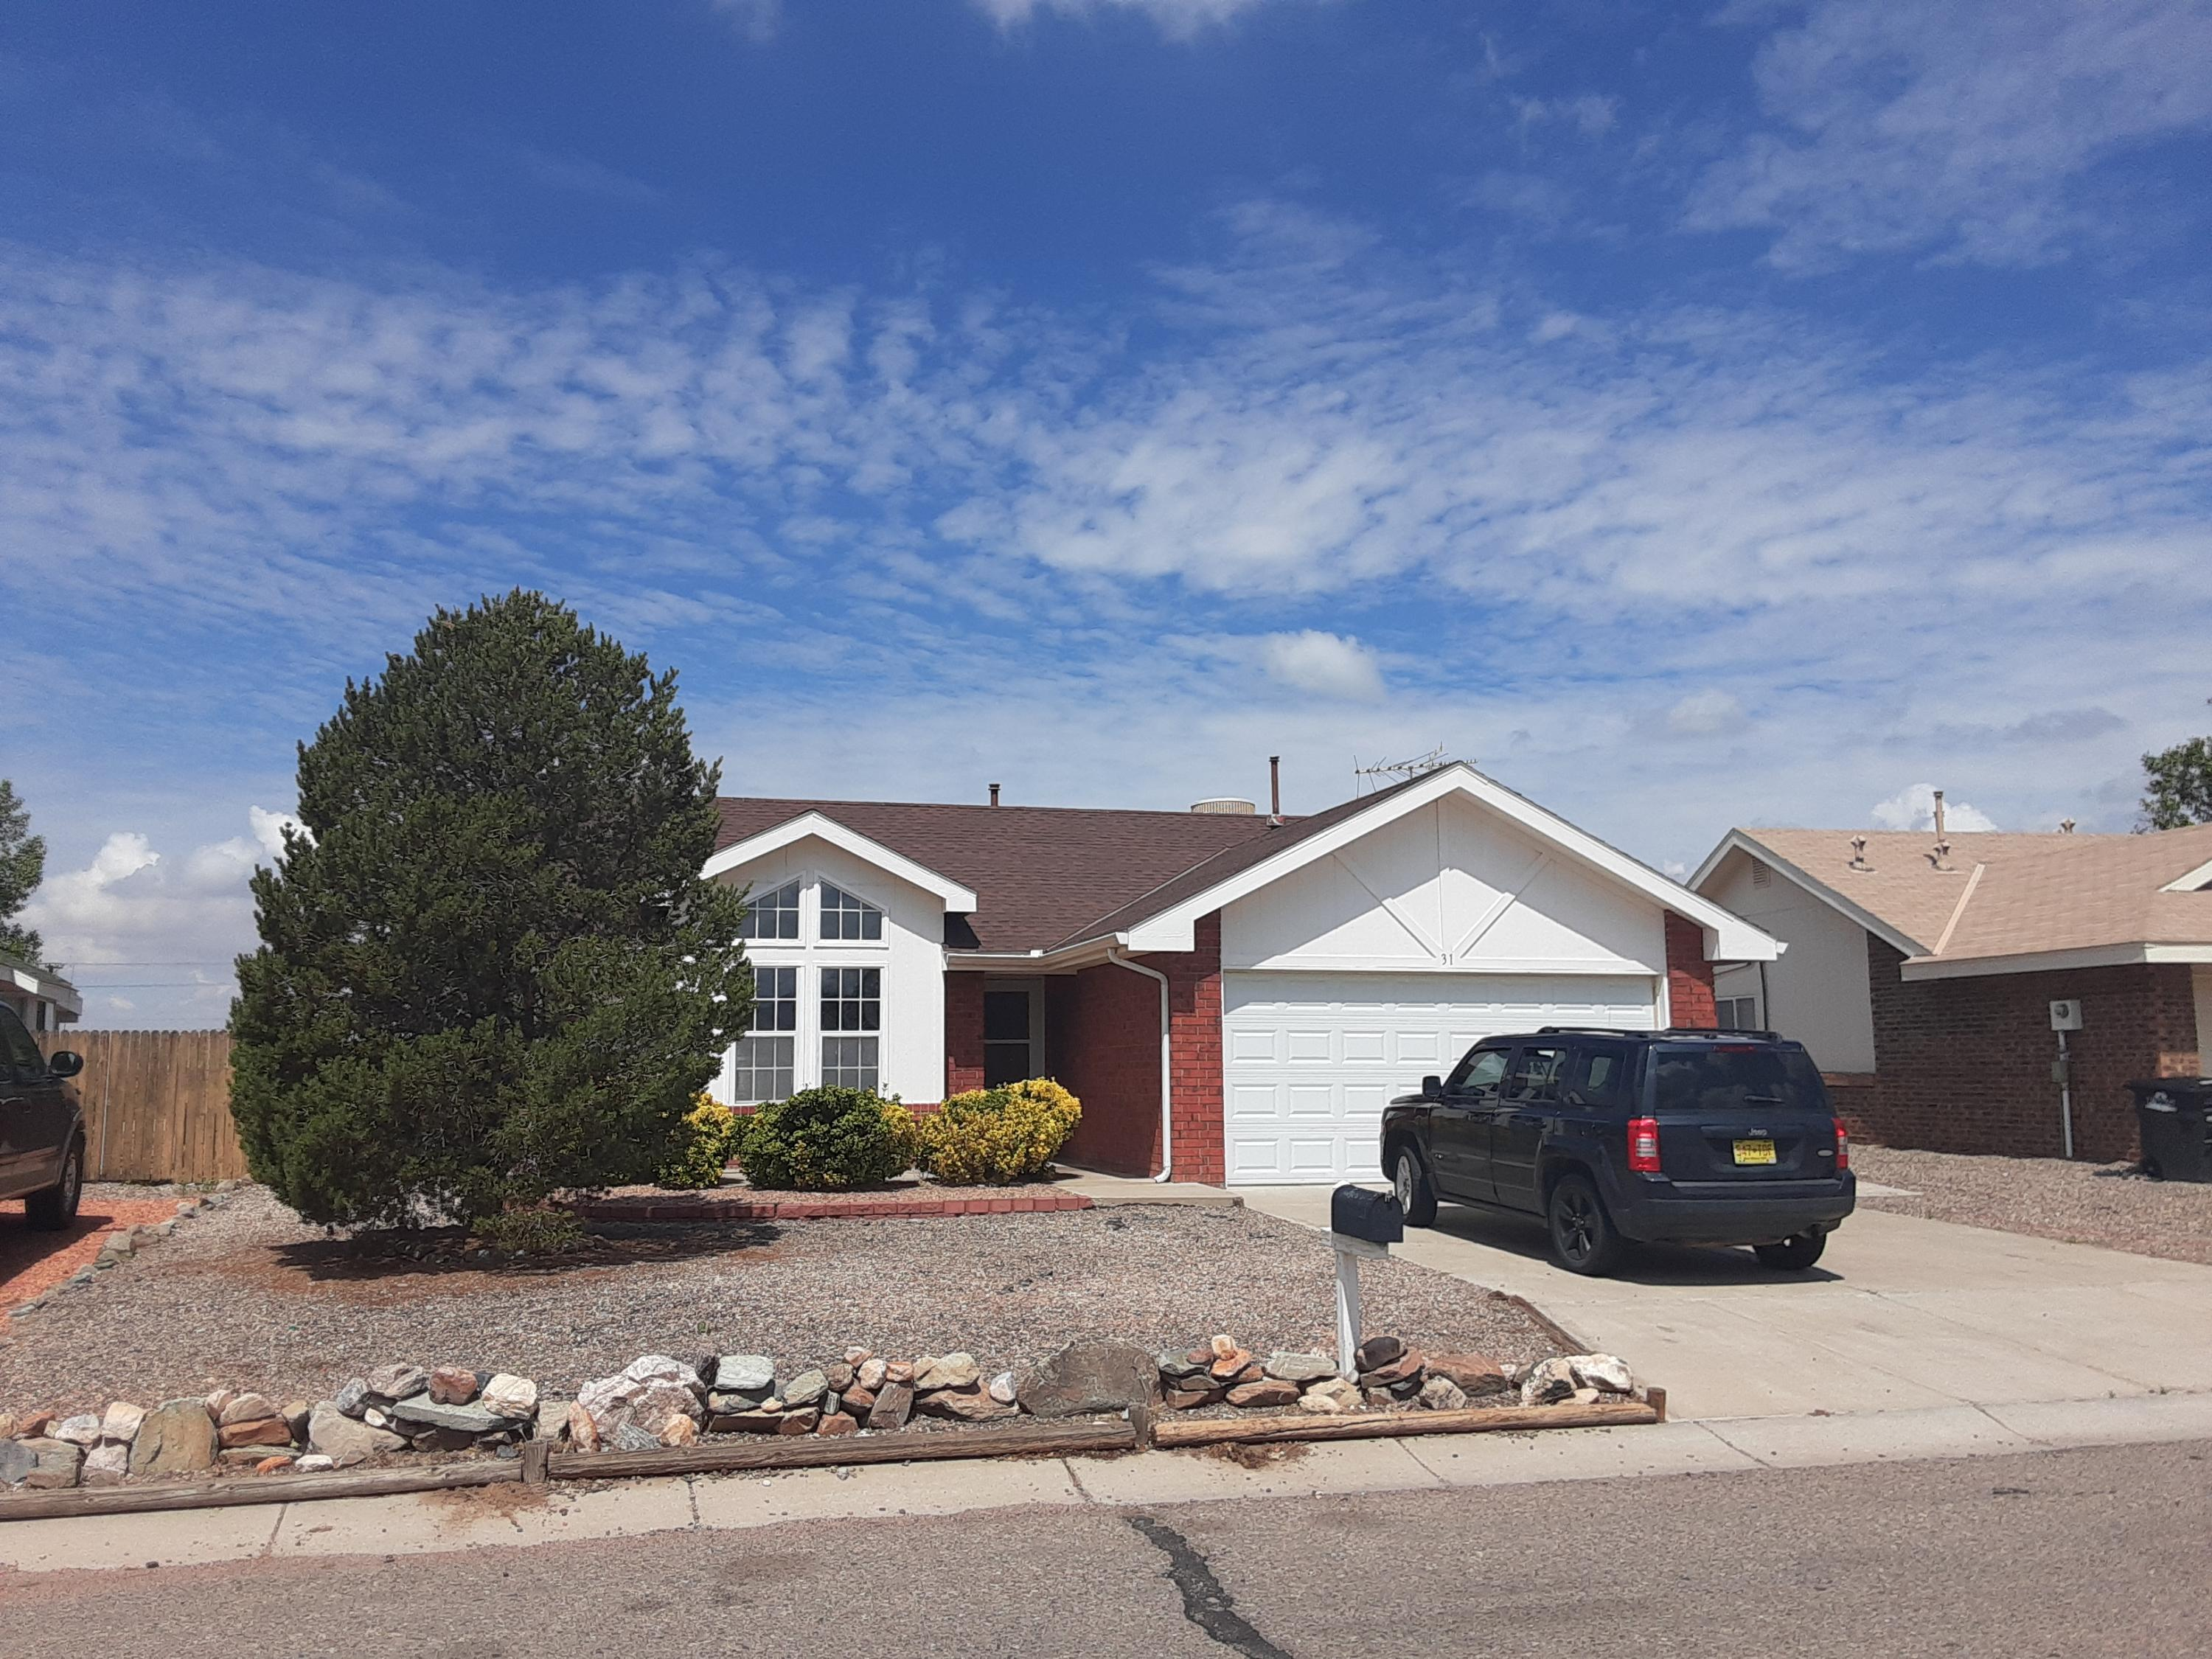 Nice Sivage Thomas Home! 3 bedroom, 2 full bath, walk-in closet in Owner Suite. Spacious kitchen with plenty of cabinet space, solid counter top surface. Cozy fireplace in the living room. Landscaped front and back, 18x11 shed, mature shade tree and pine trees.